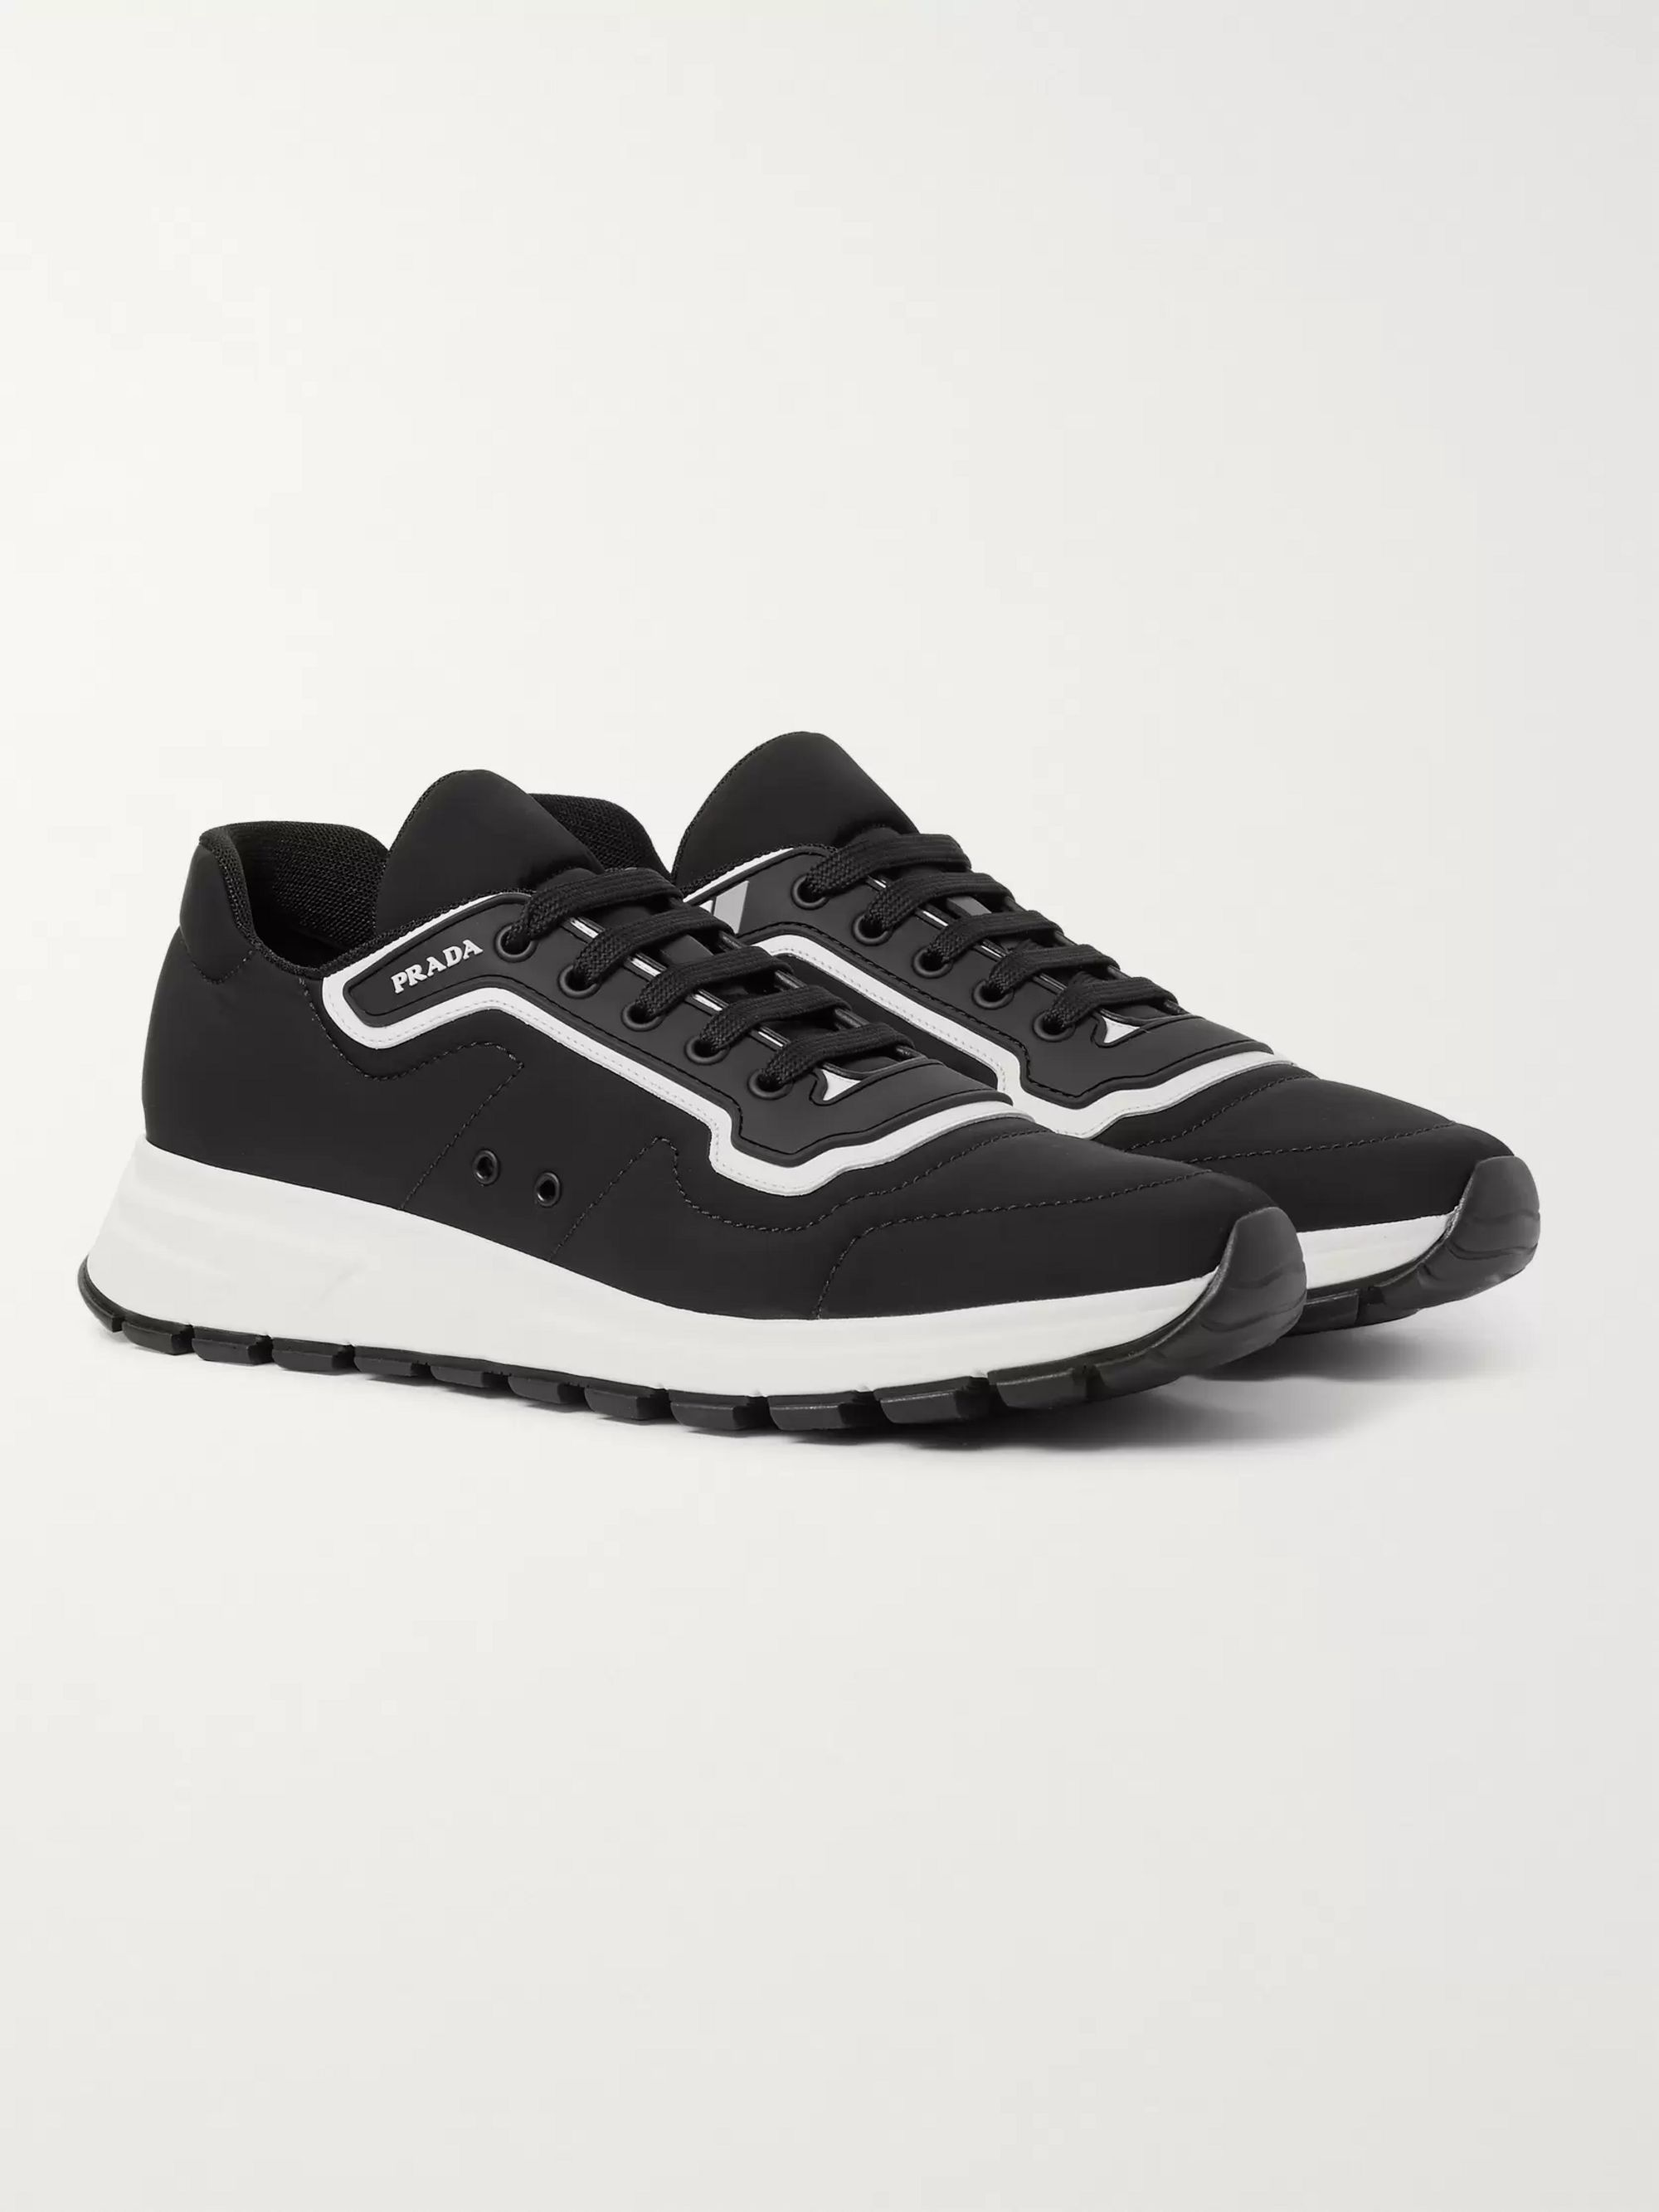 Match Race Rubber and Leather Trimmed Nylon Sneakers